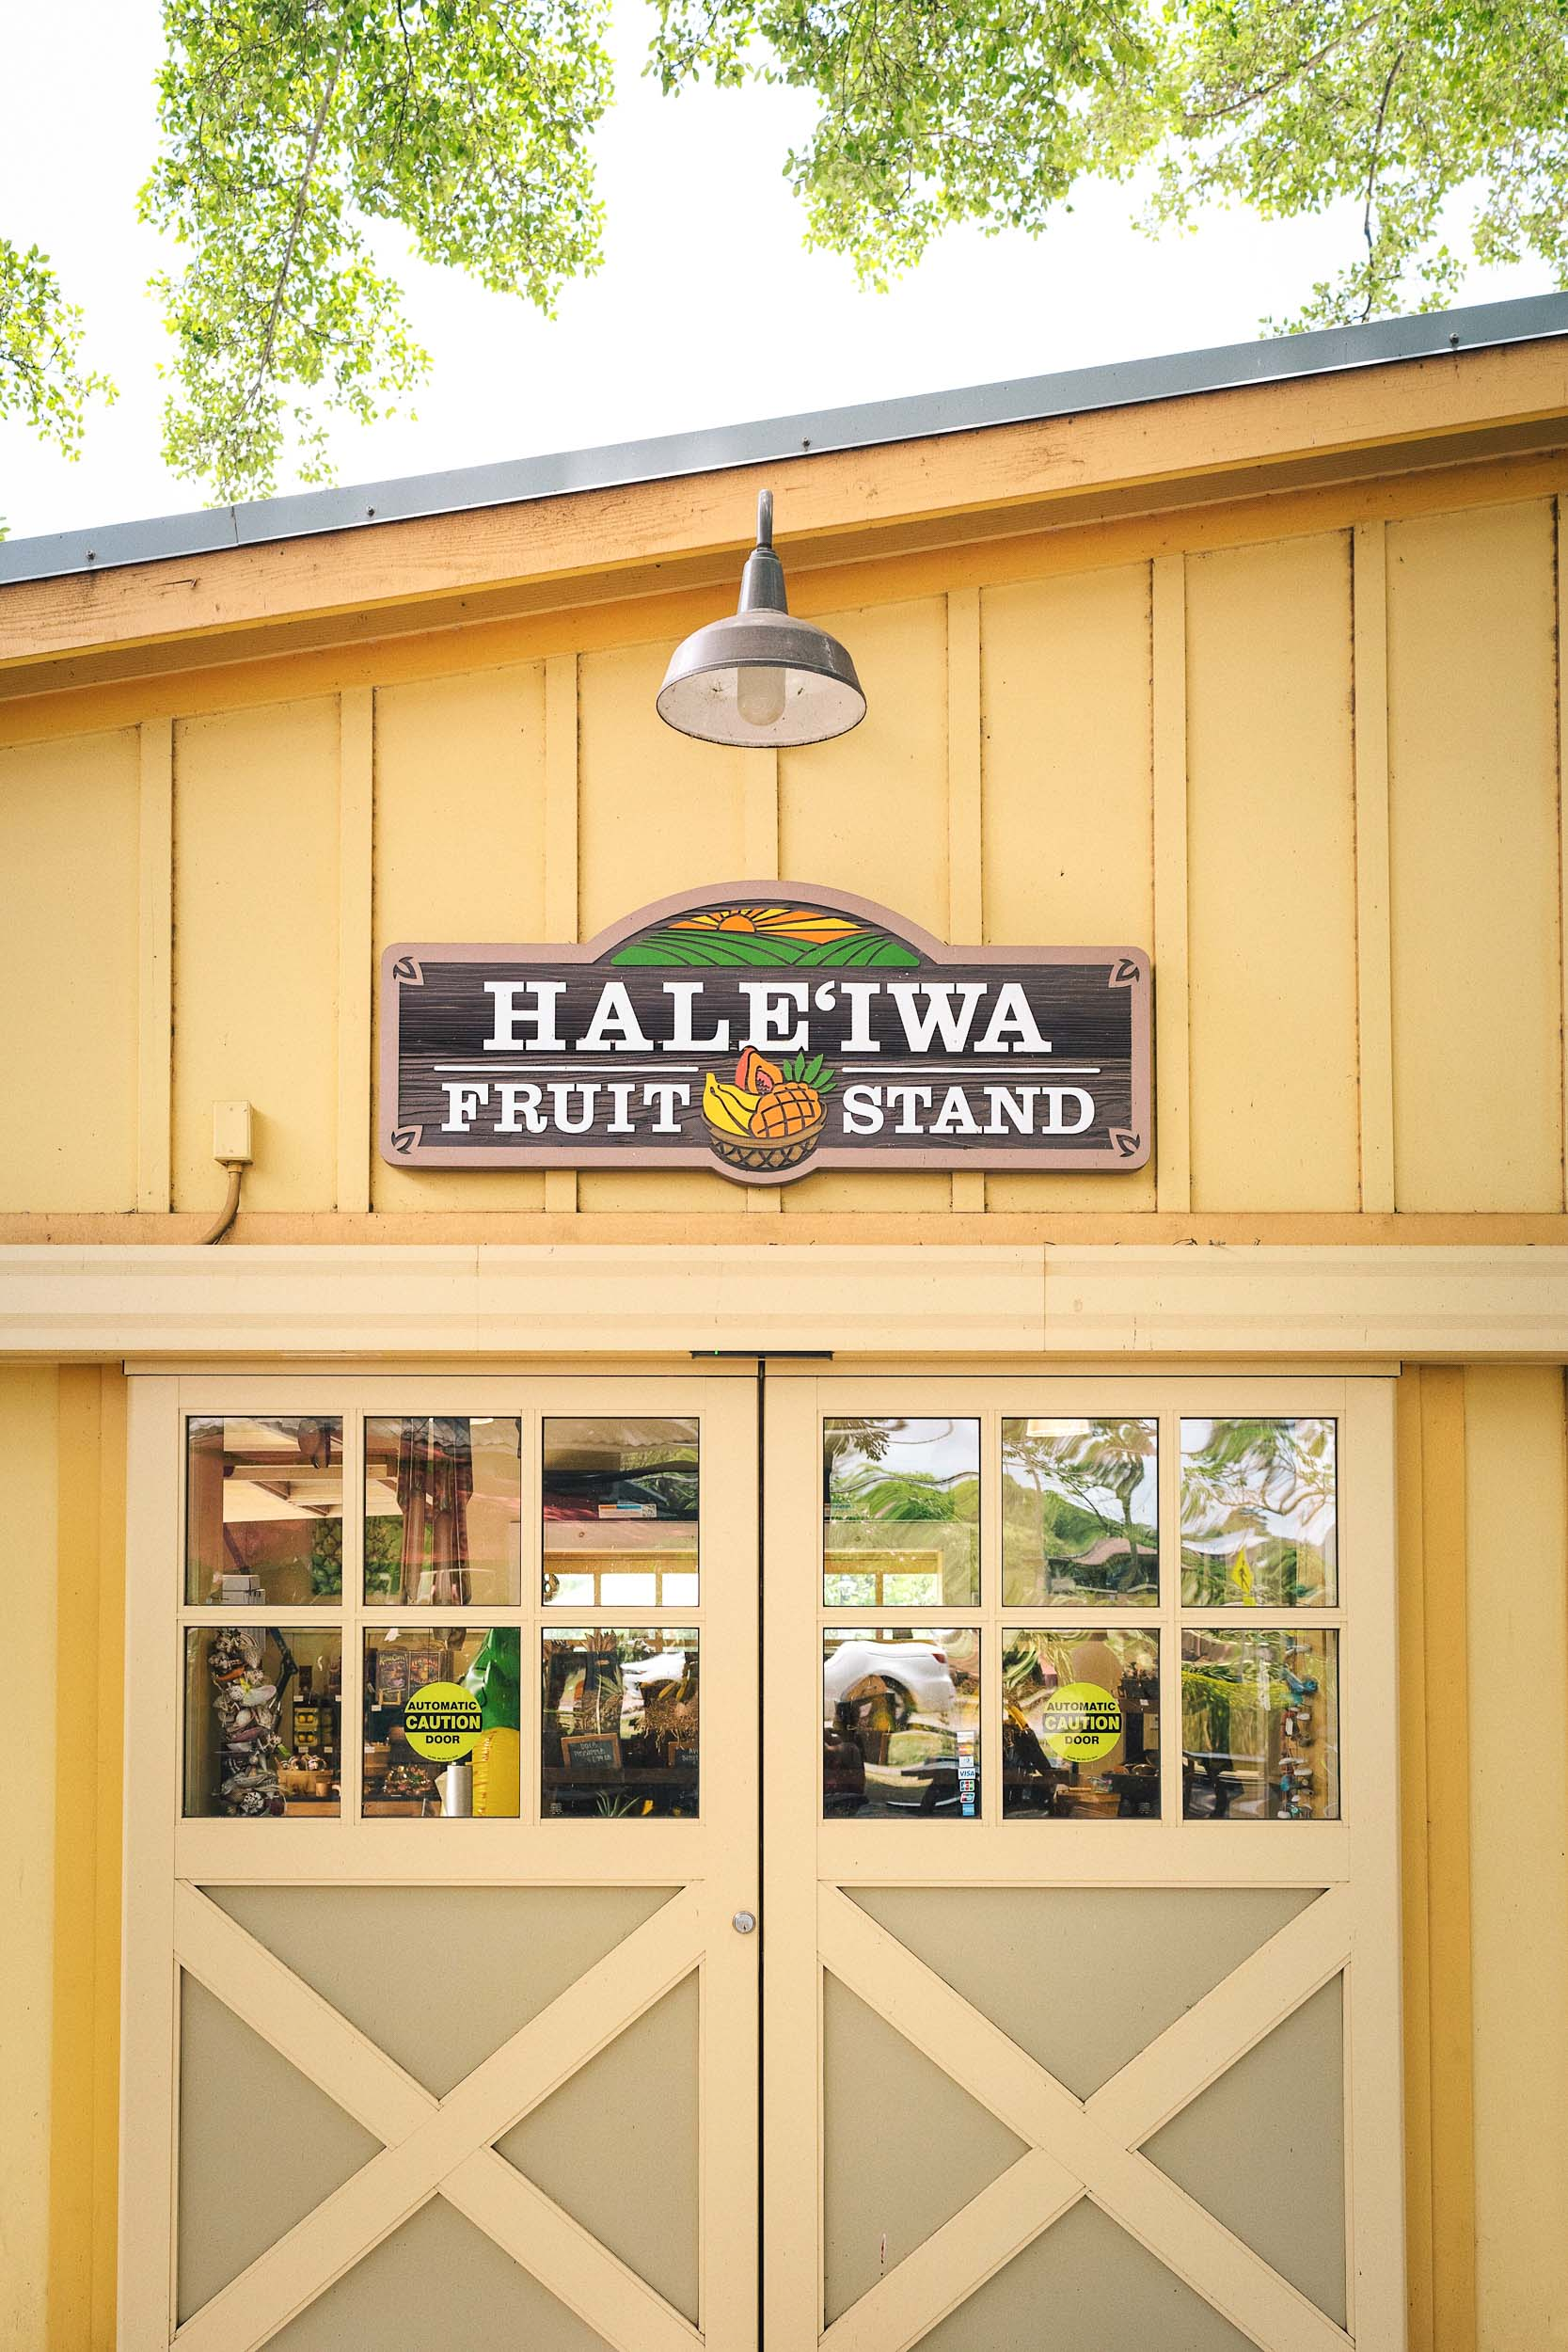 Haleiwa Fruit Stand at Haleiwa Store Lots